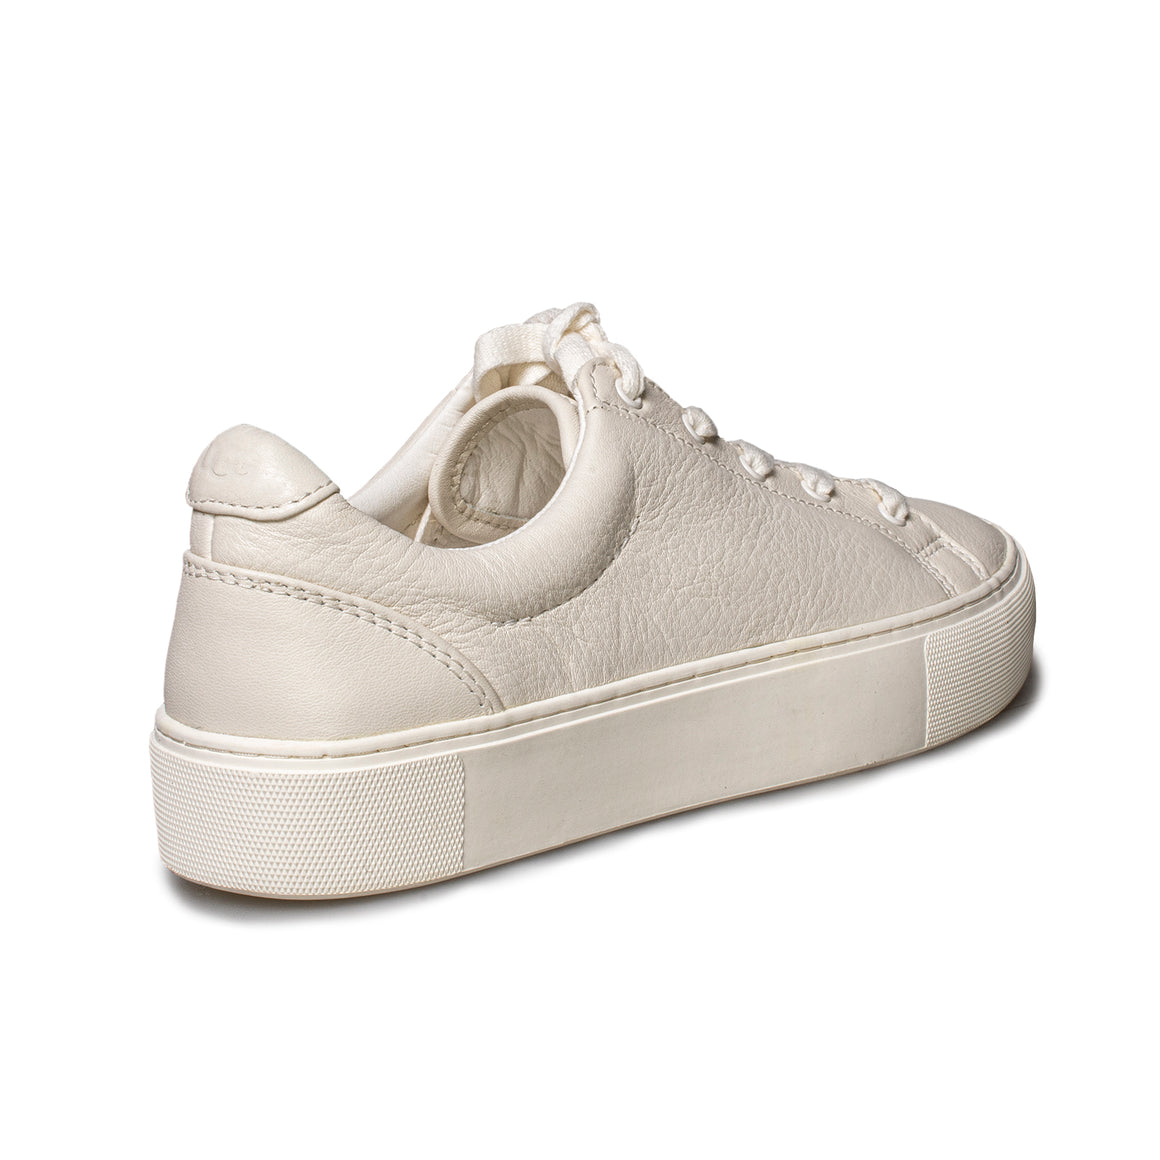 UGG Zilo White Shoe's - Women's